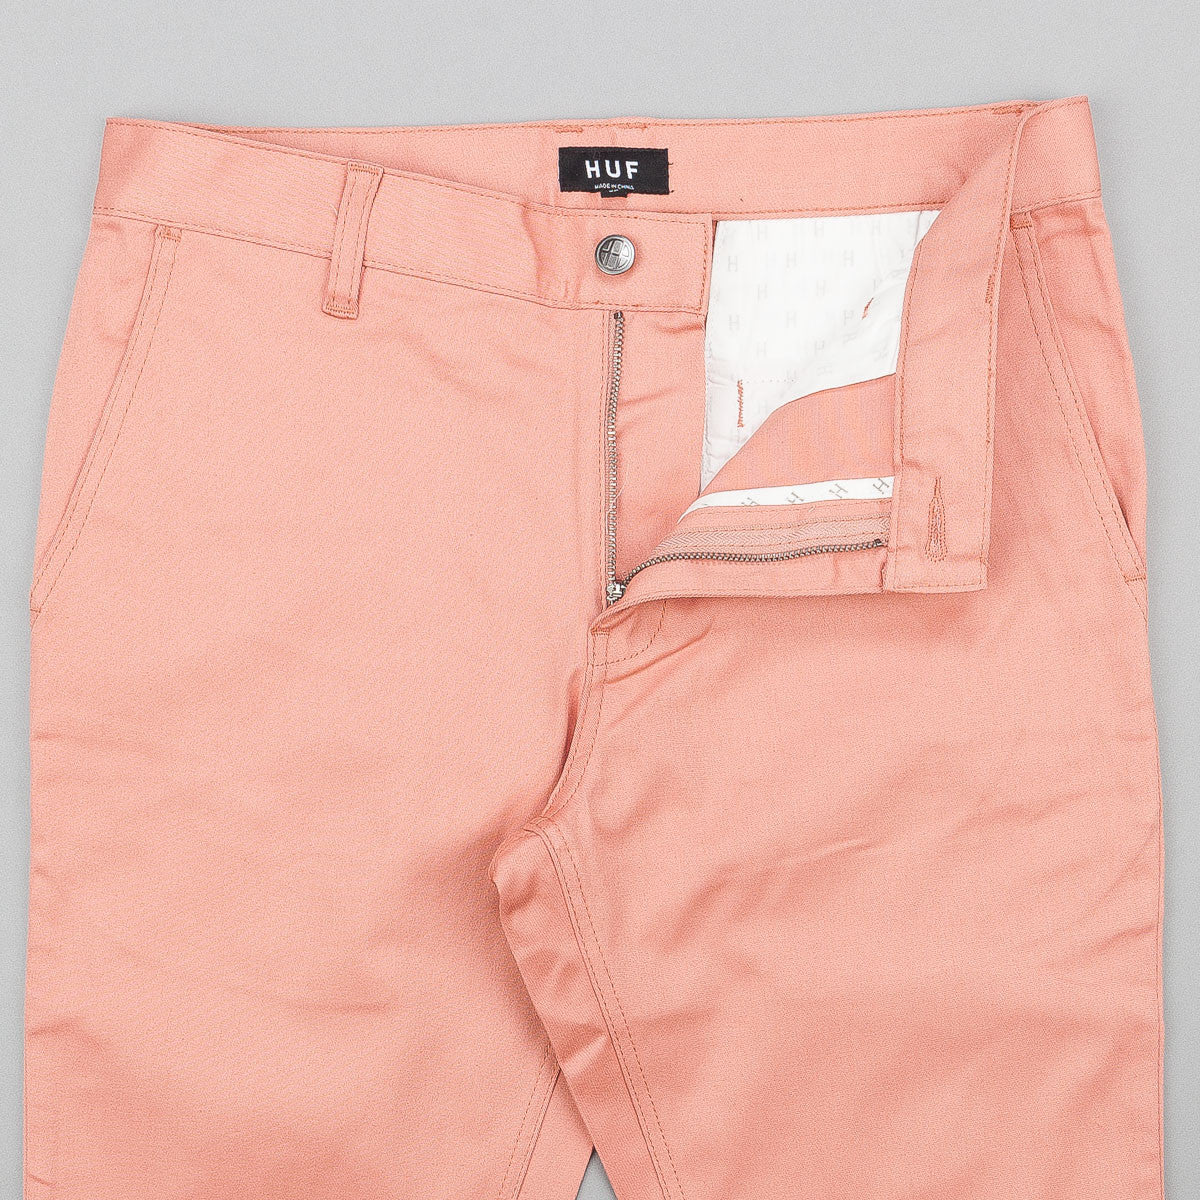 HUF Fulton Slim Chino Trousers - Smoked Pink